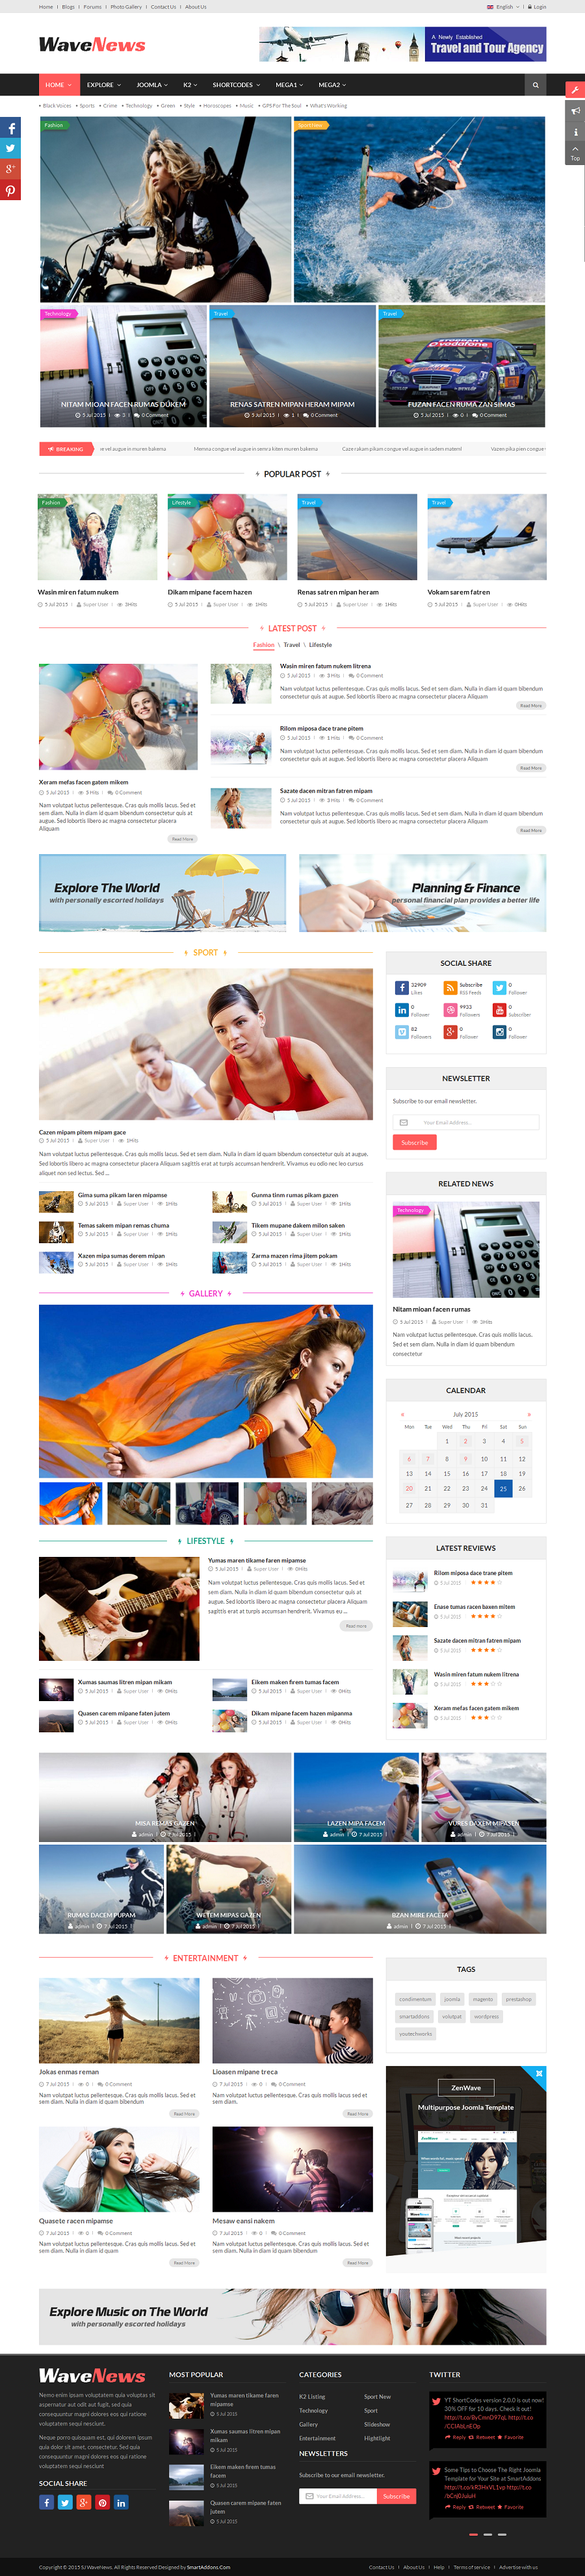 SJ WaveNews - Responsive Joomla news magazine Template - 11_red.png